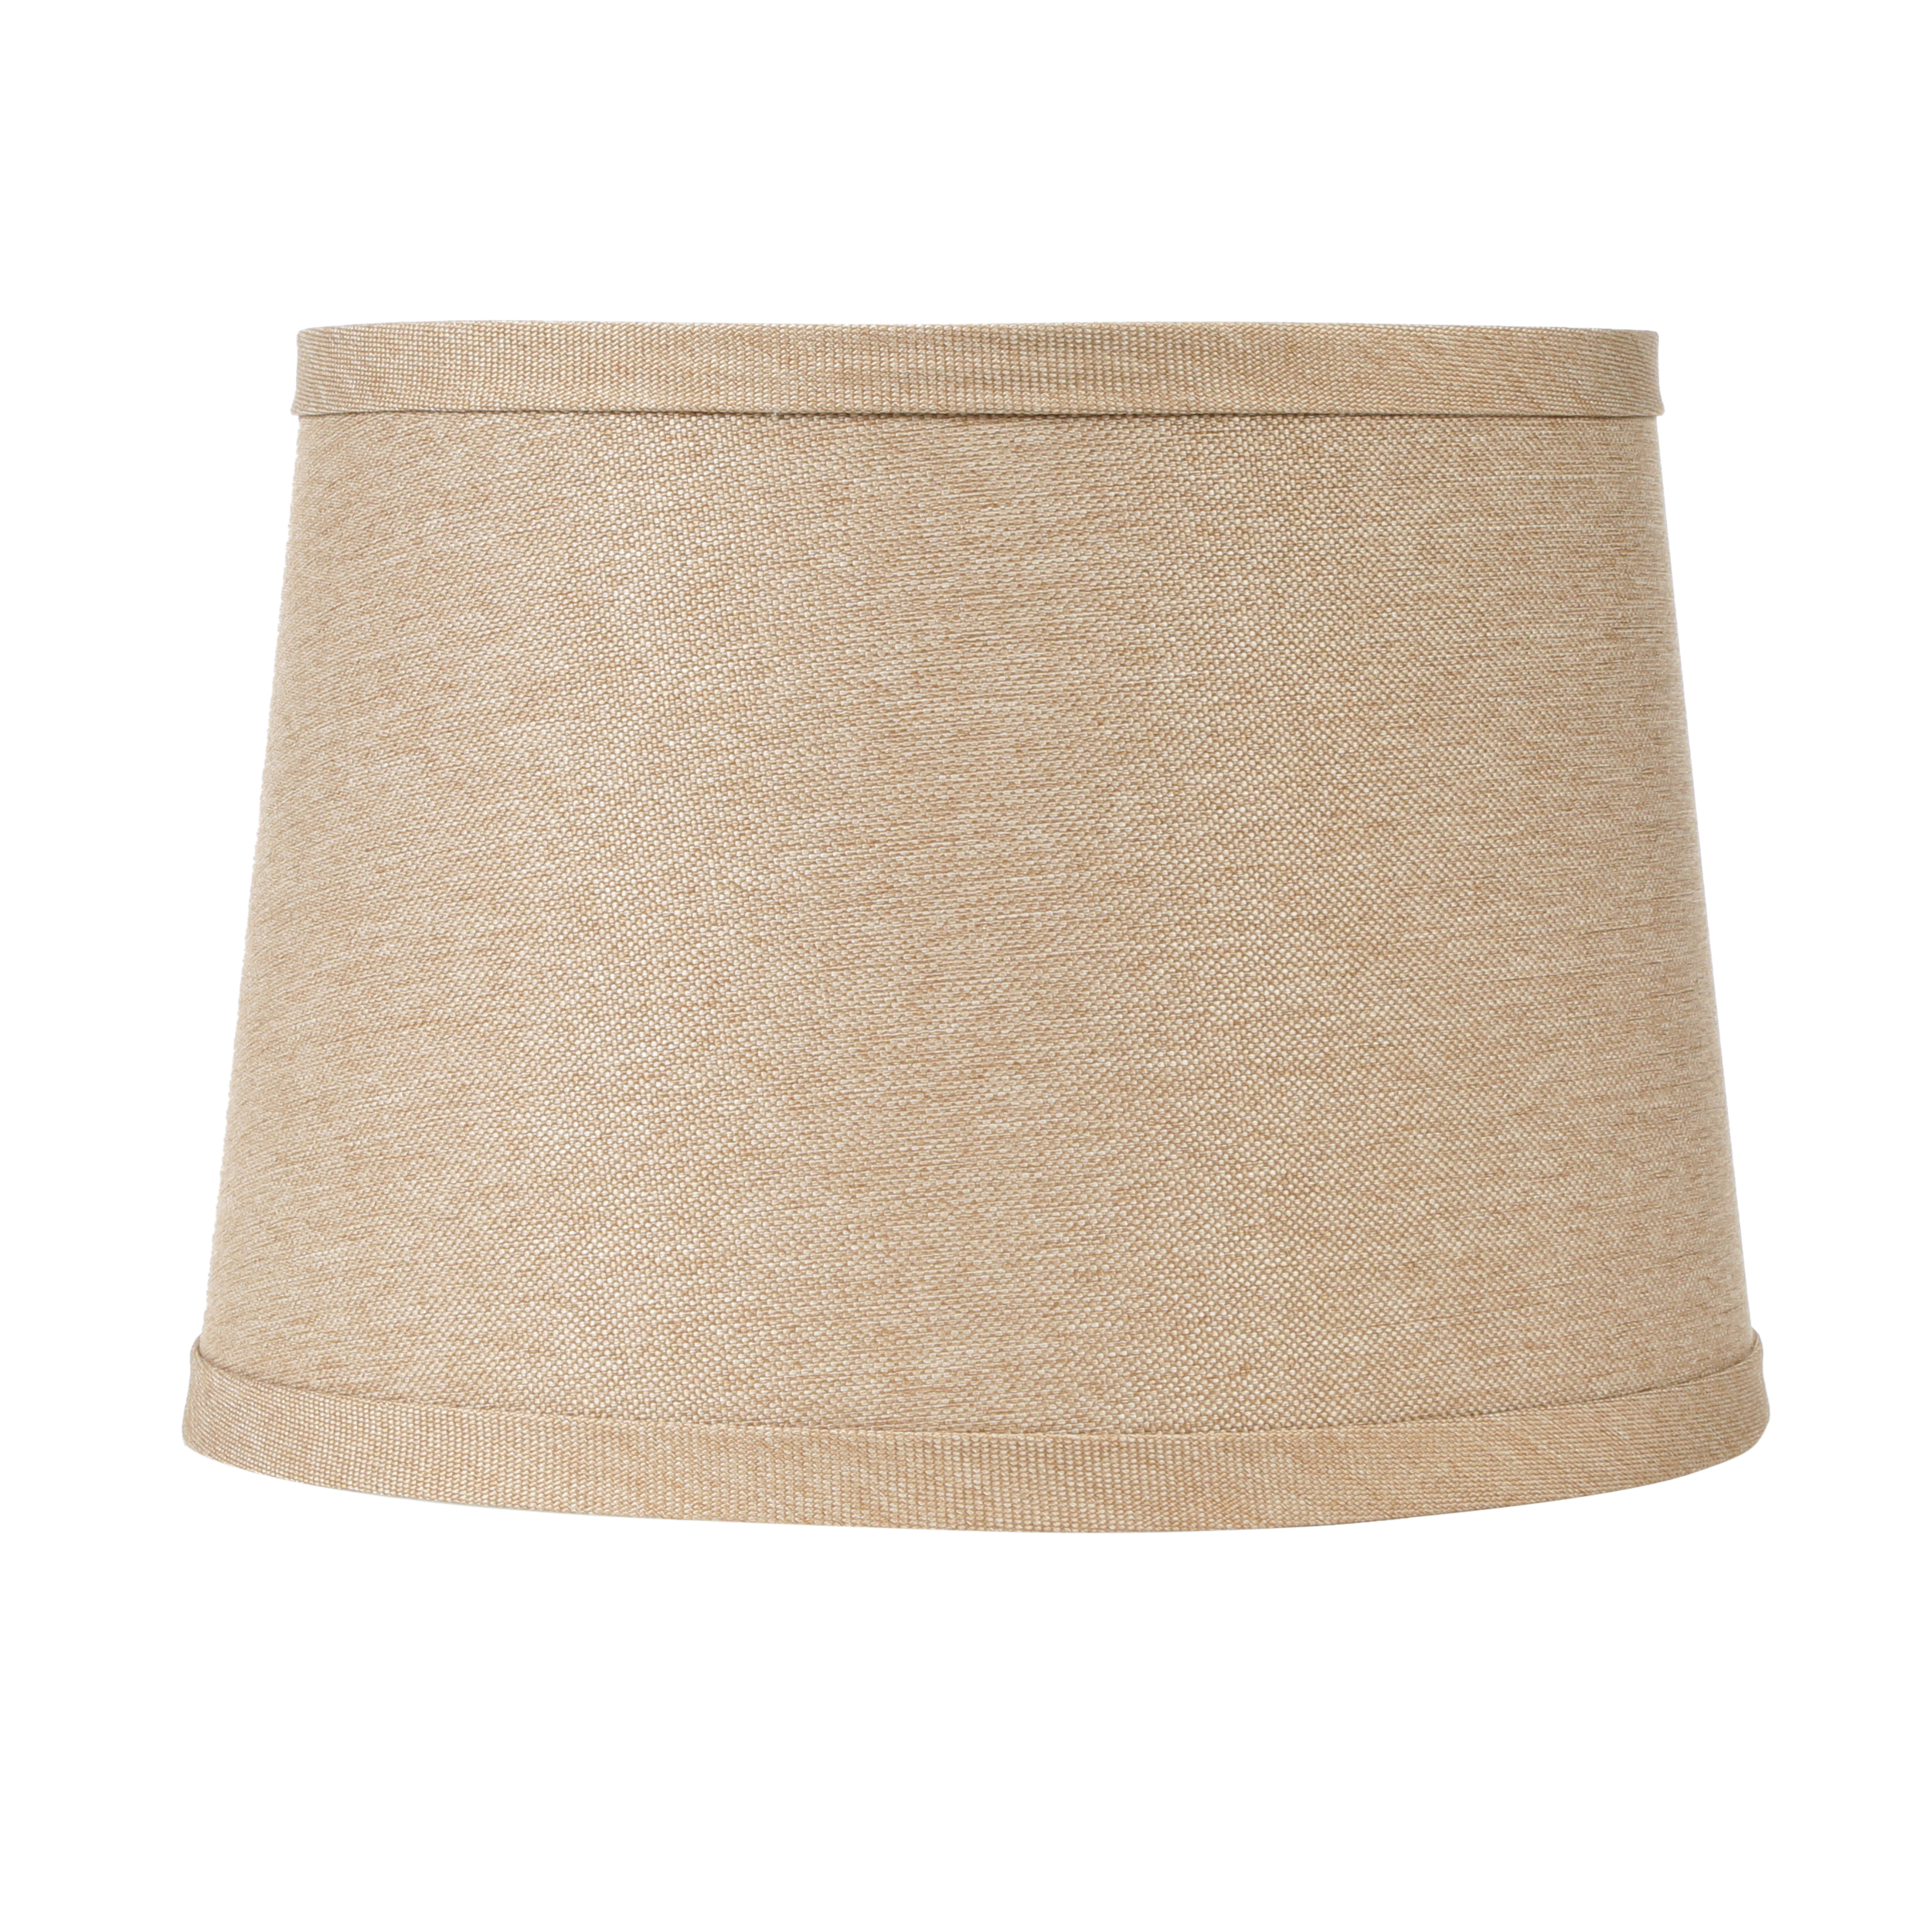 Better Homes and Gardens Beige Textured Table Lampshade by Mastercraft Distribution USA, Inc.